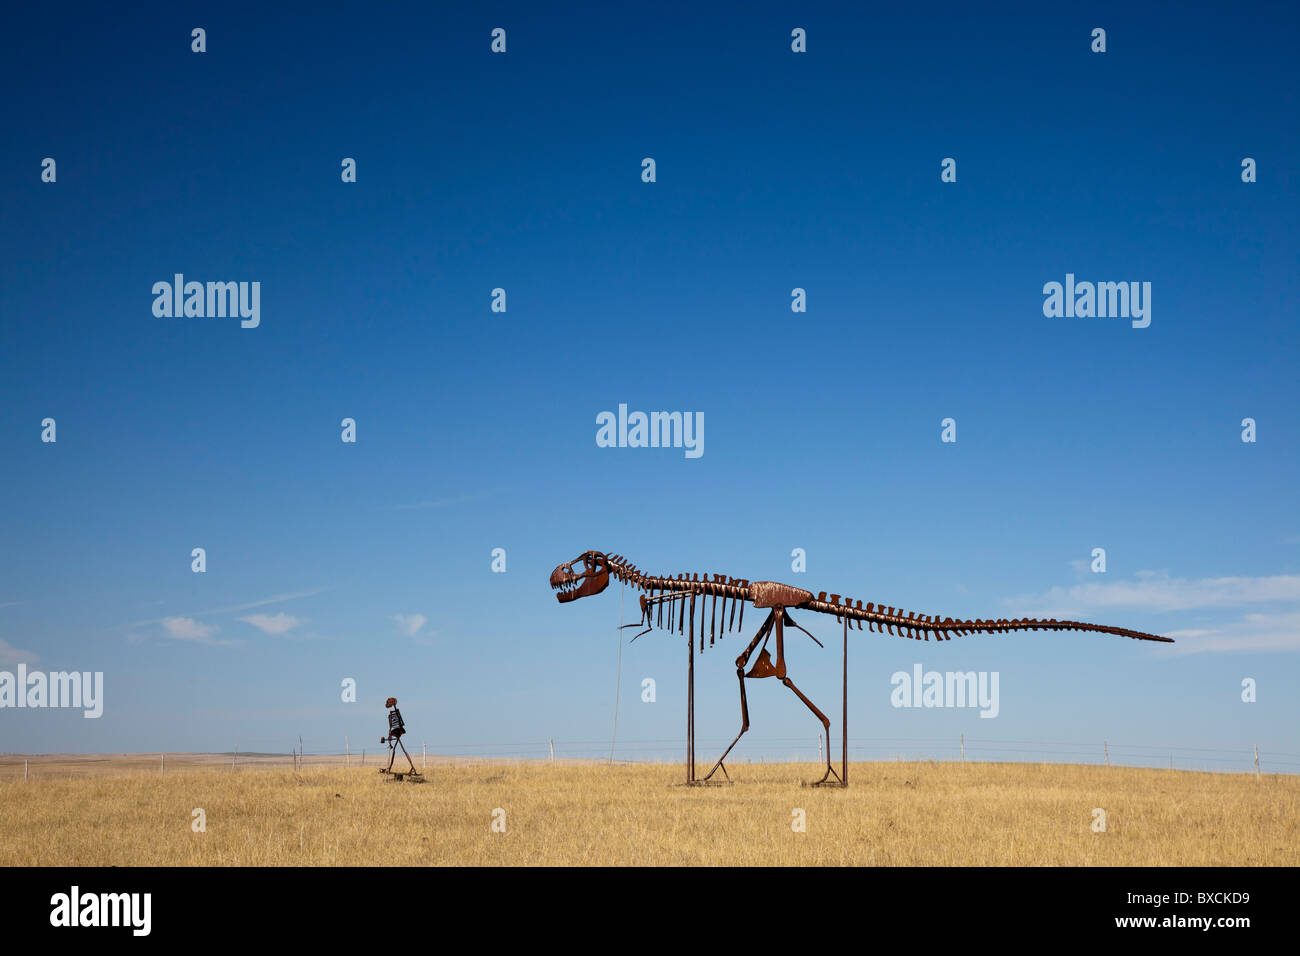 Stamford, South Dakota - Skeletons of a man and a dinosaur walking across the plains of South Dakota. - Stock Image